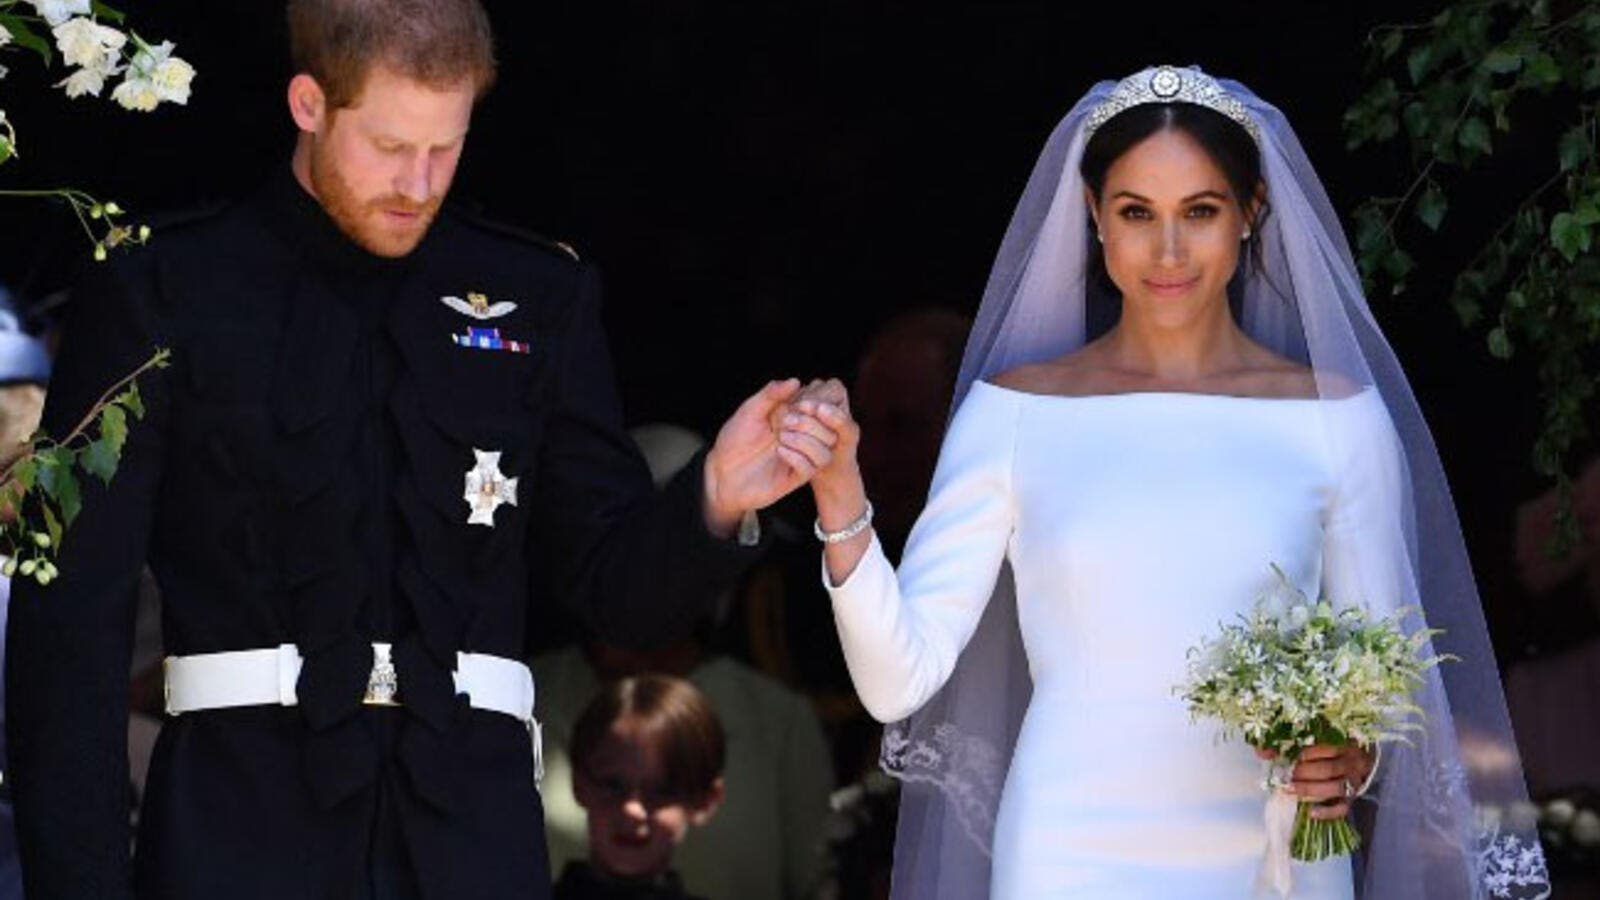 Meghan Markle wore one of Princess Diana's rings to her wedding reception  (Source: BEN STANSALL / POOL / AFP)